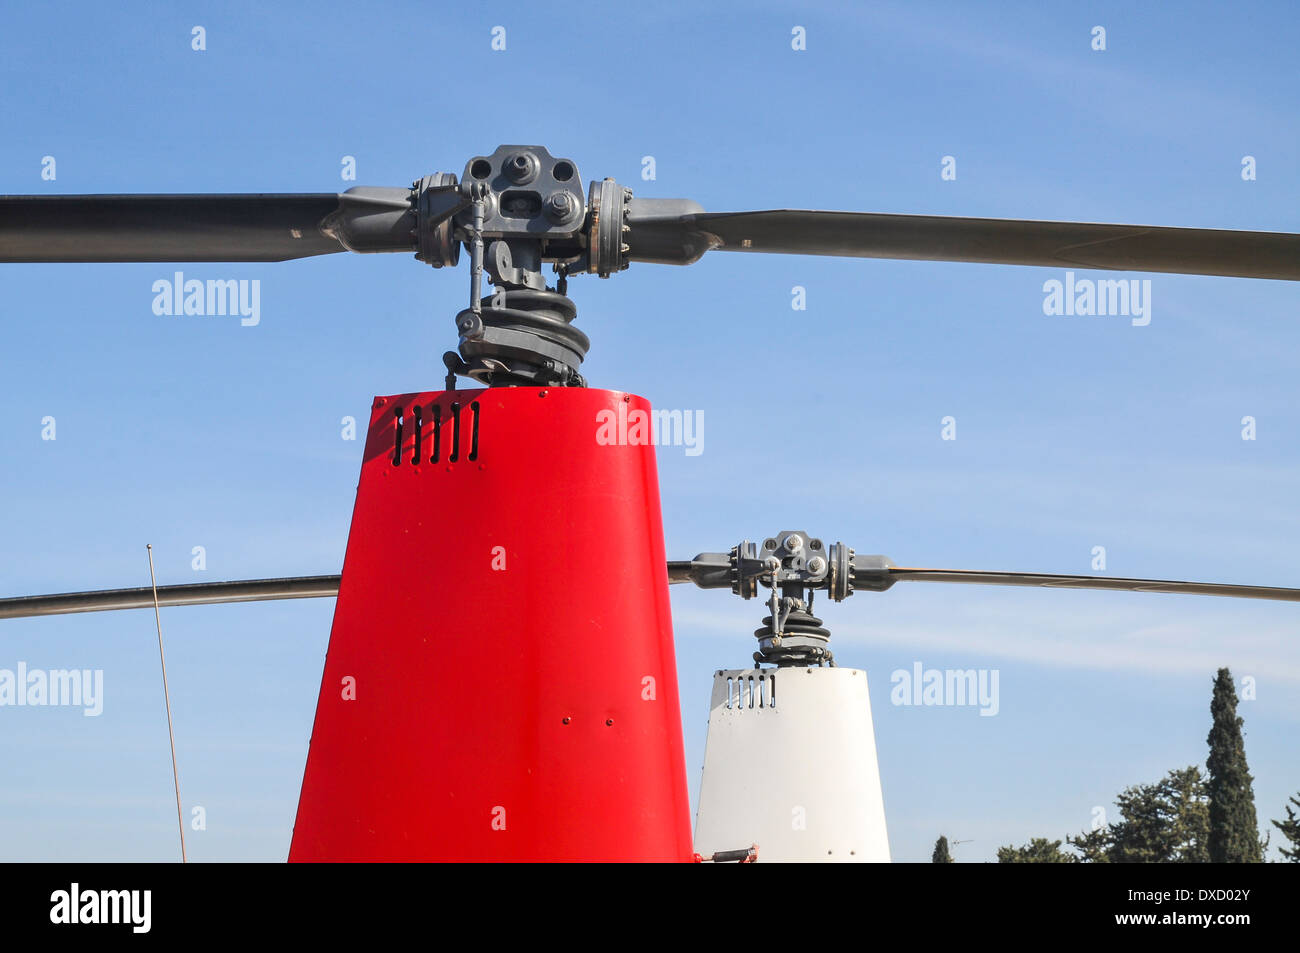 closeup of a helicopter rotor head and blades - Stock Image